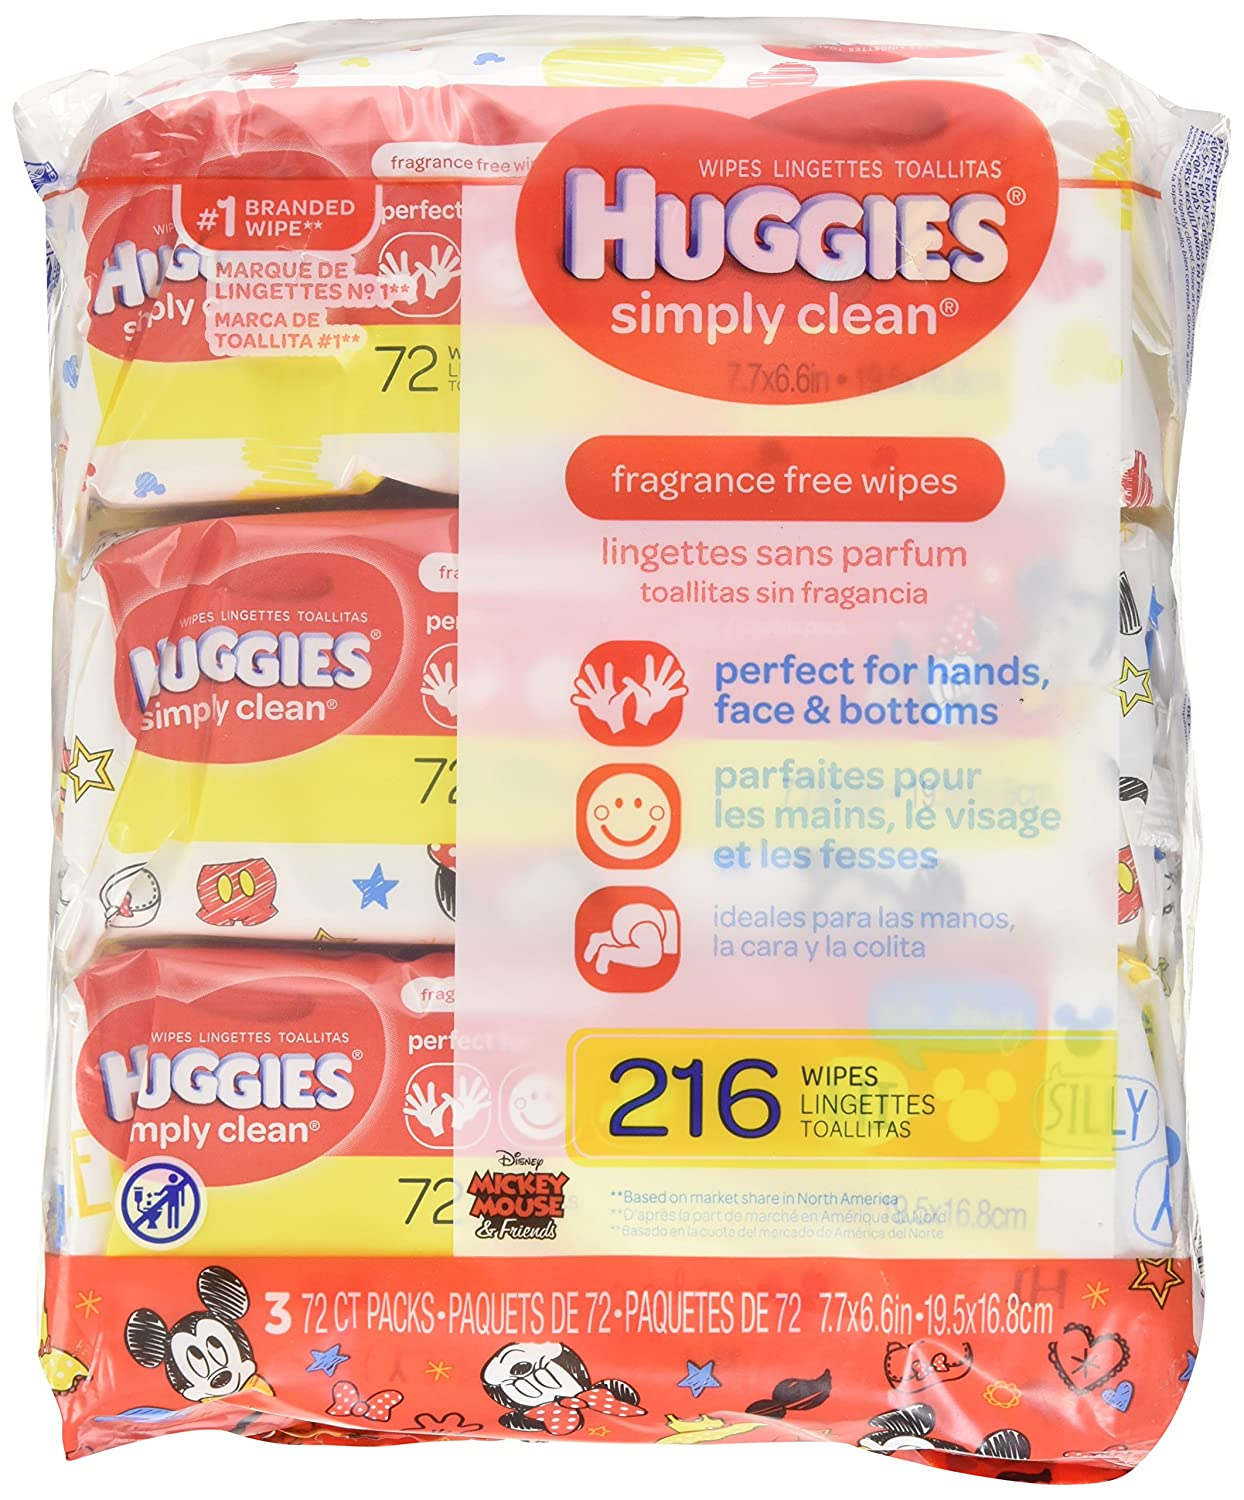 HUGGIES SIMPLY CLEAN Fragrance-Free Baby Wipes, Hypoallergenic (3X Soft Packs, 216 Count) Kimberly-Clark Corp. CA